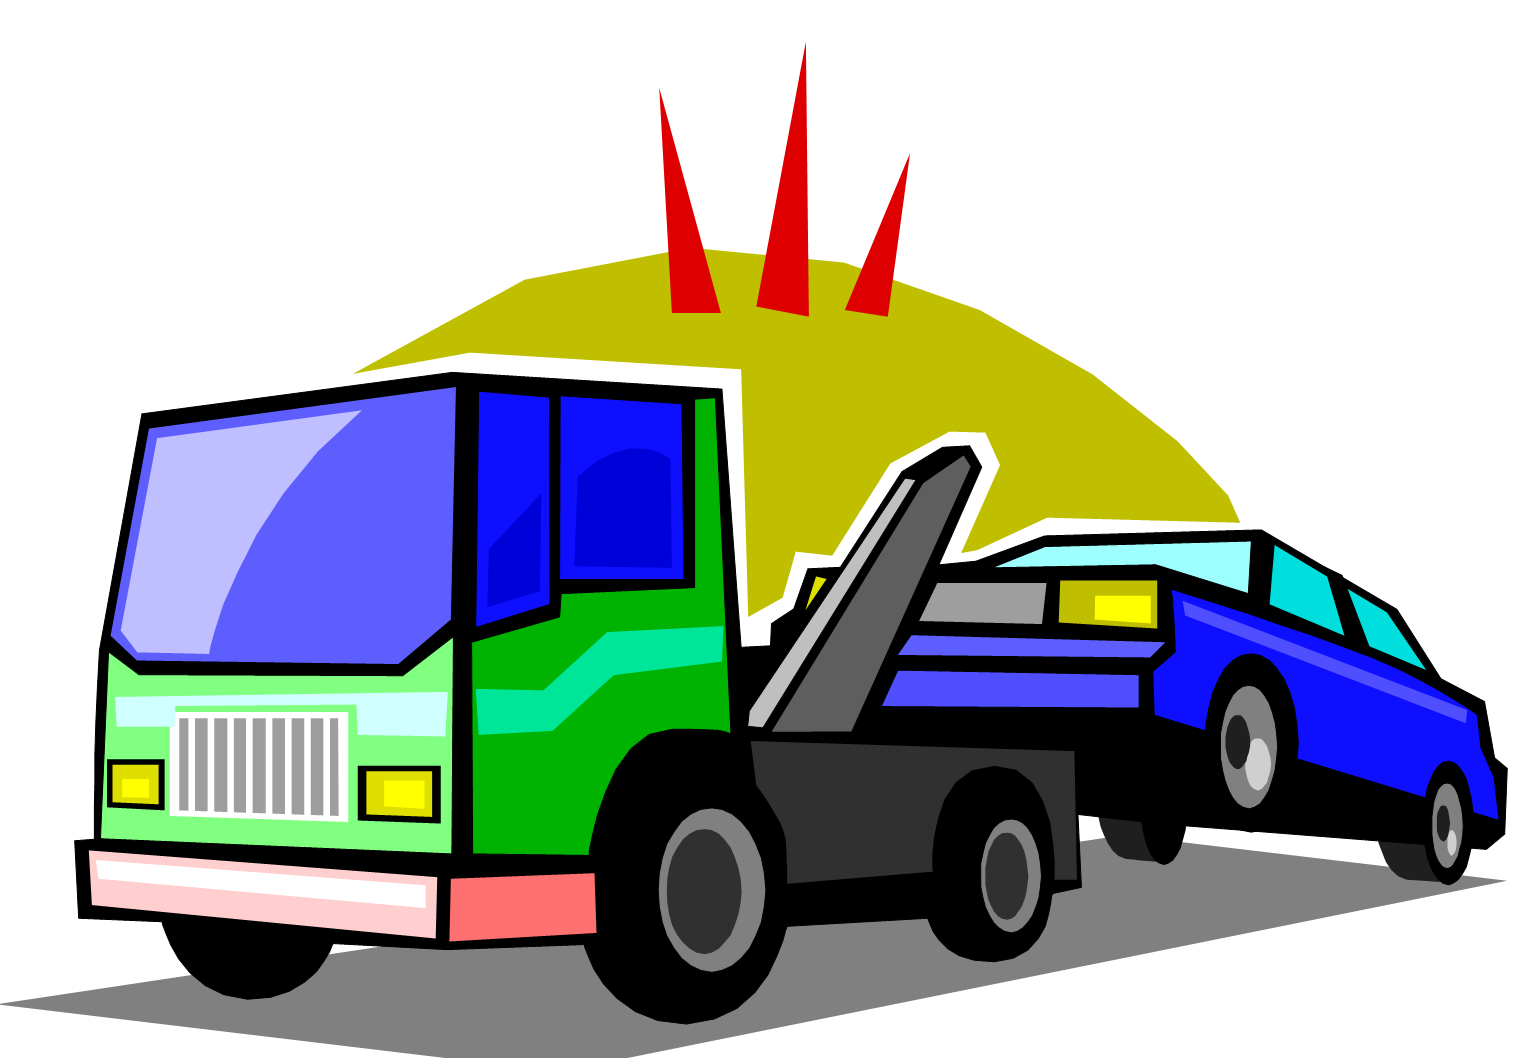 Home clipart car. Transport your safely with